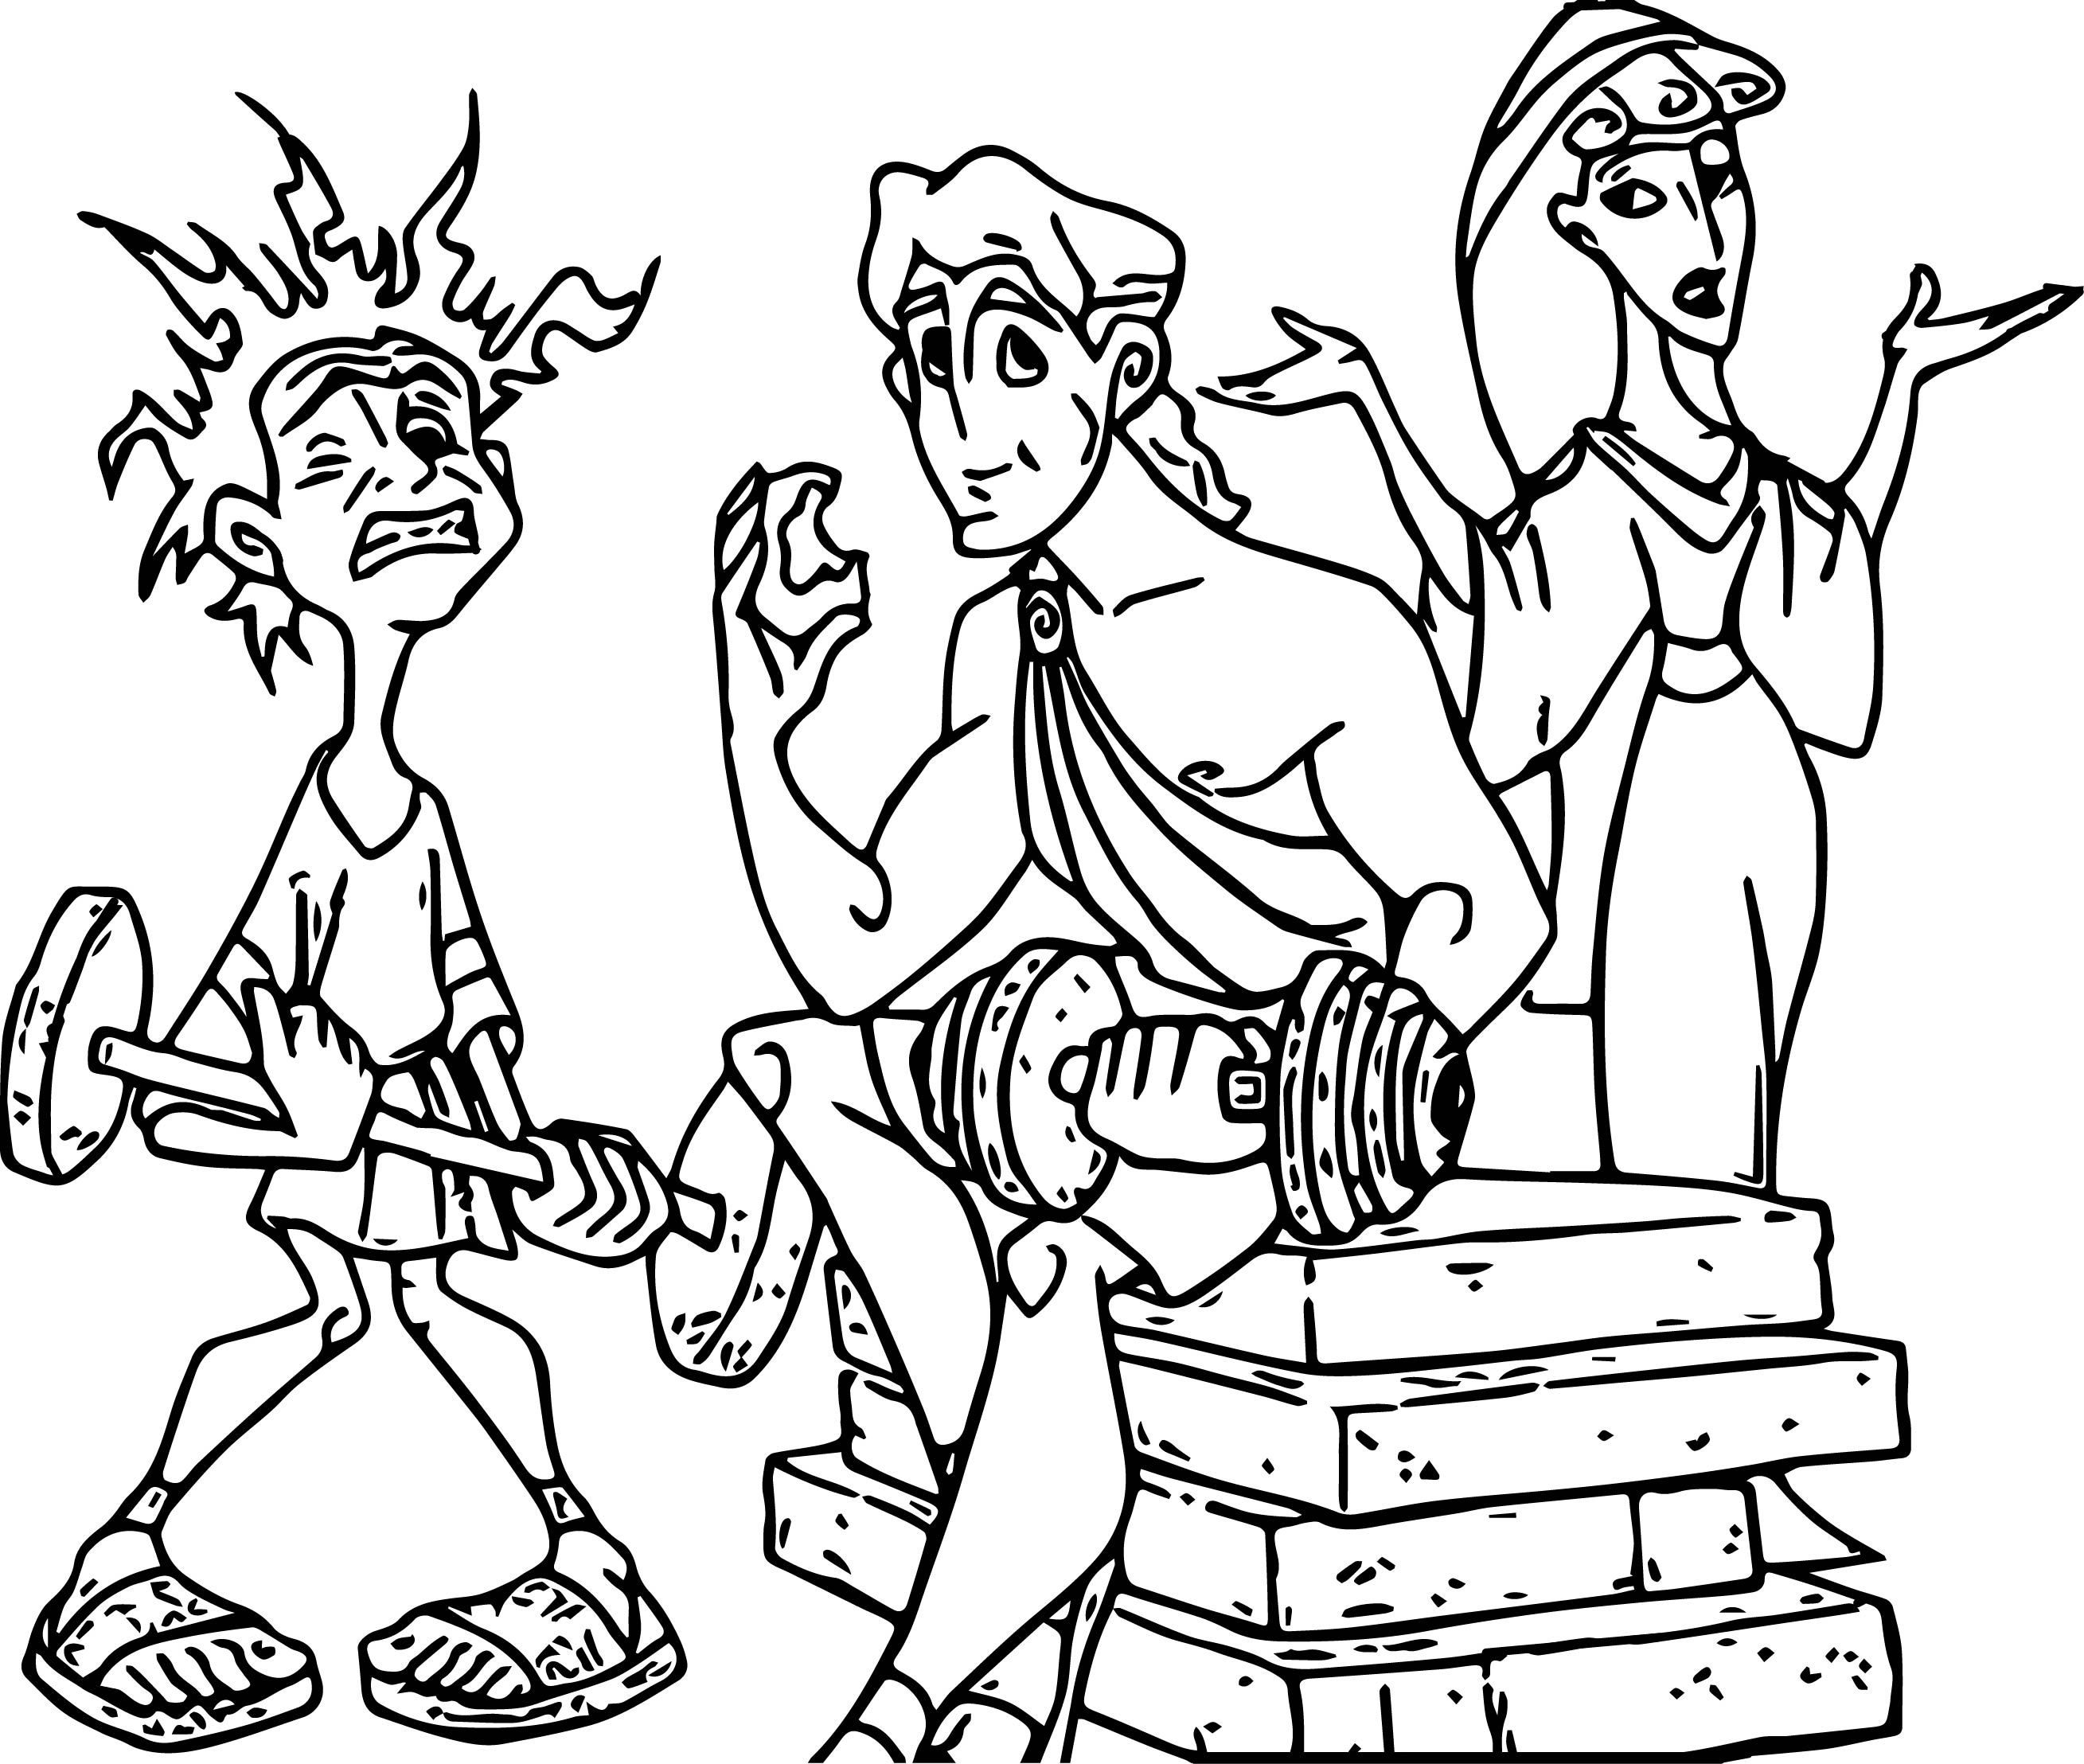 Baby Hercules and Baby Pegasus Coloring Pages